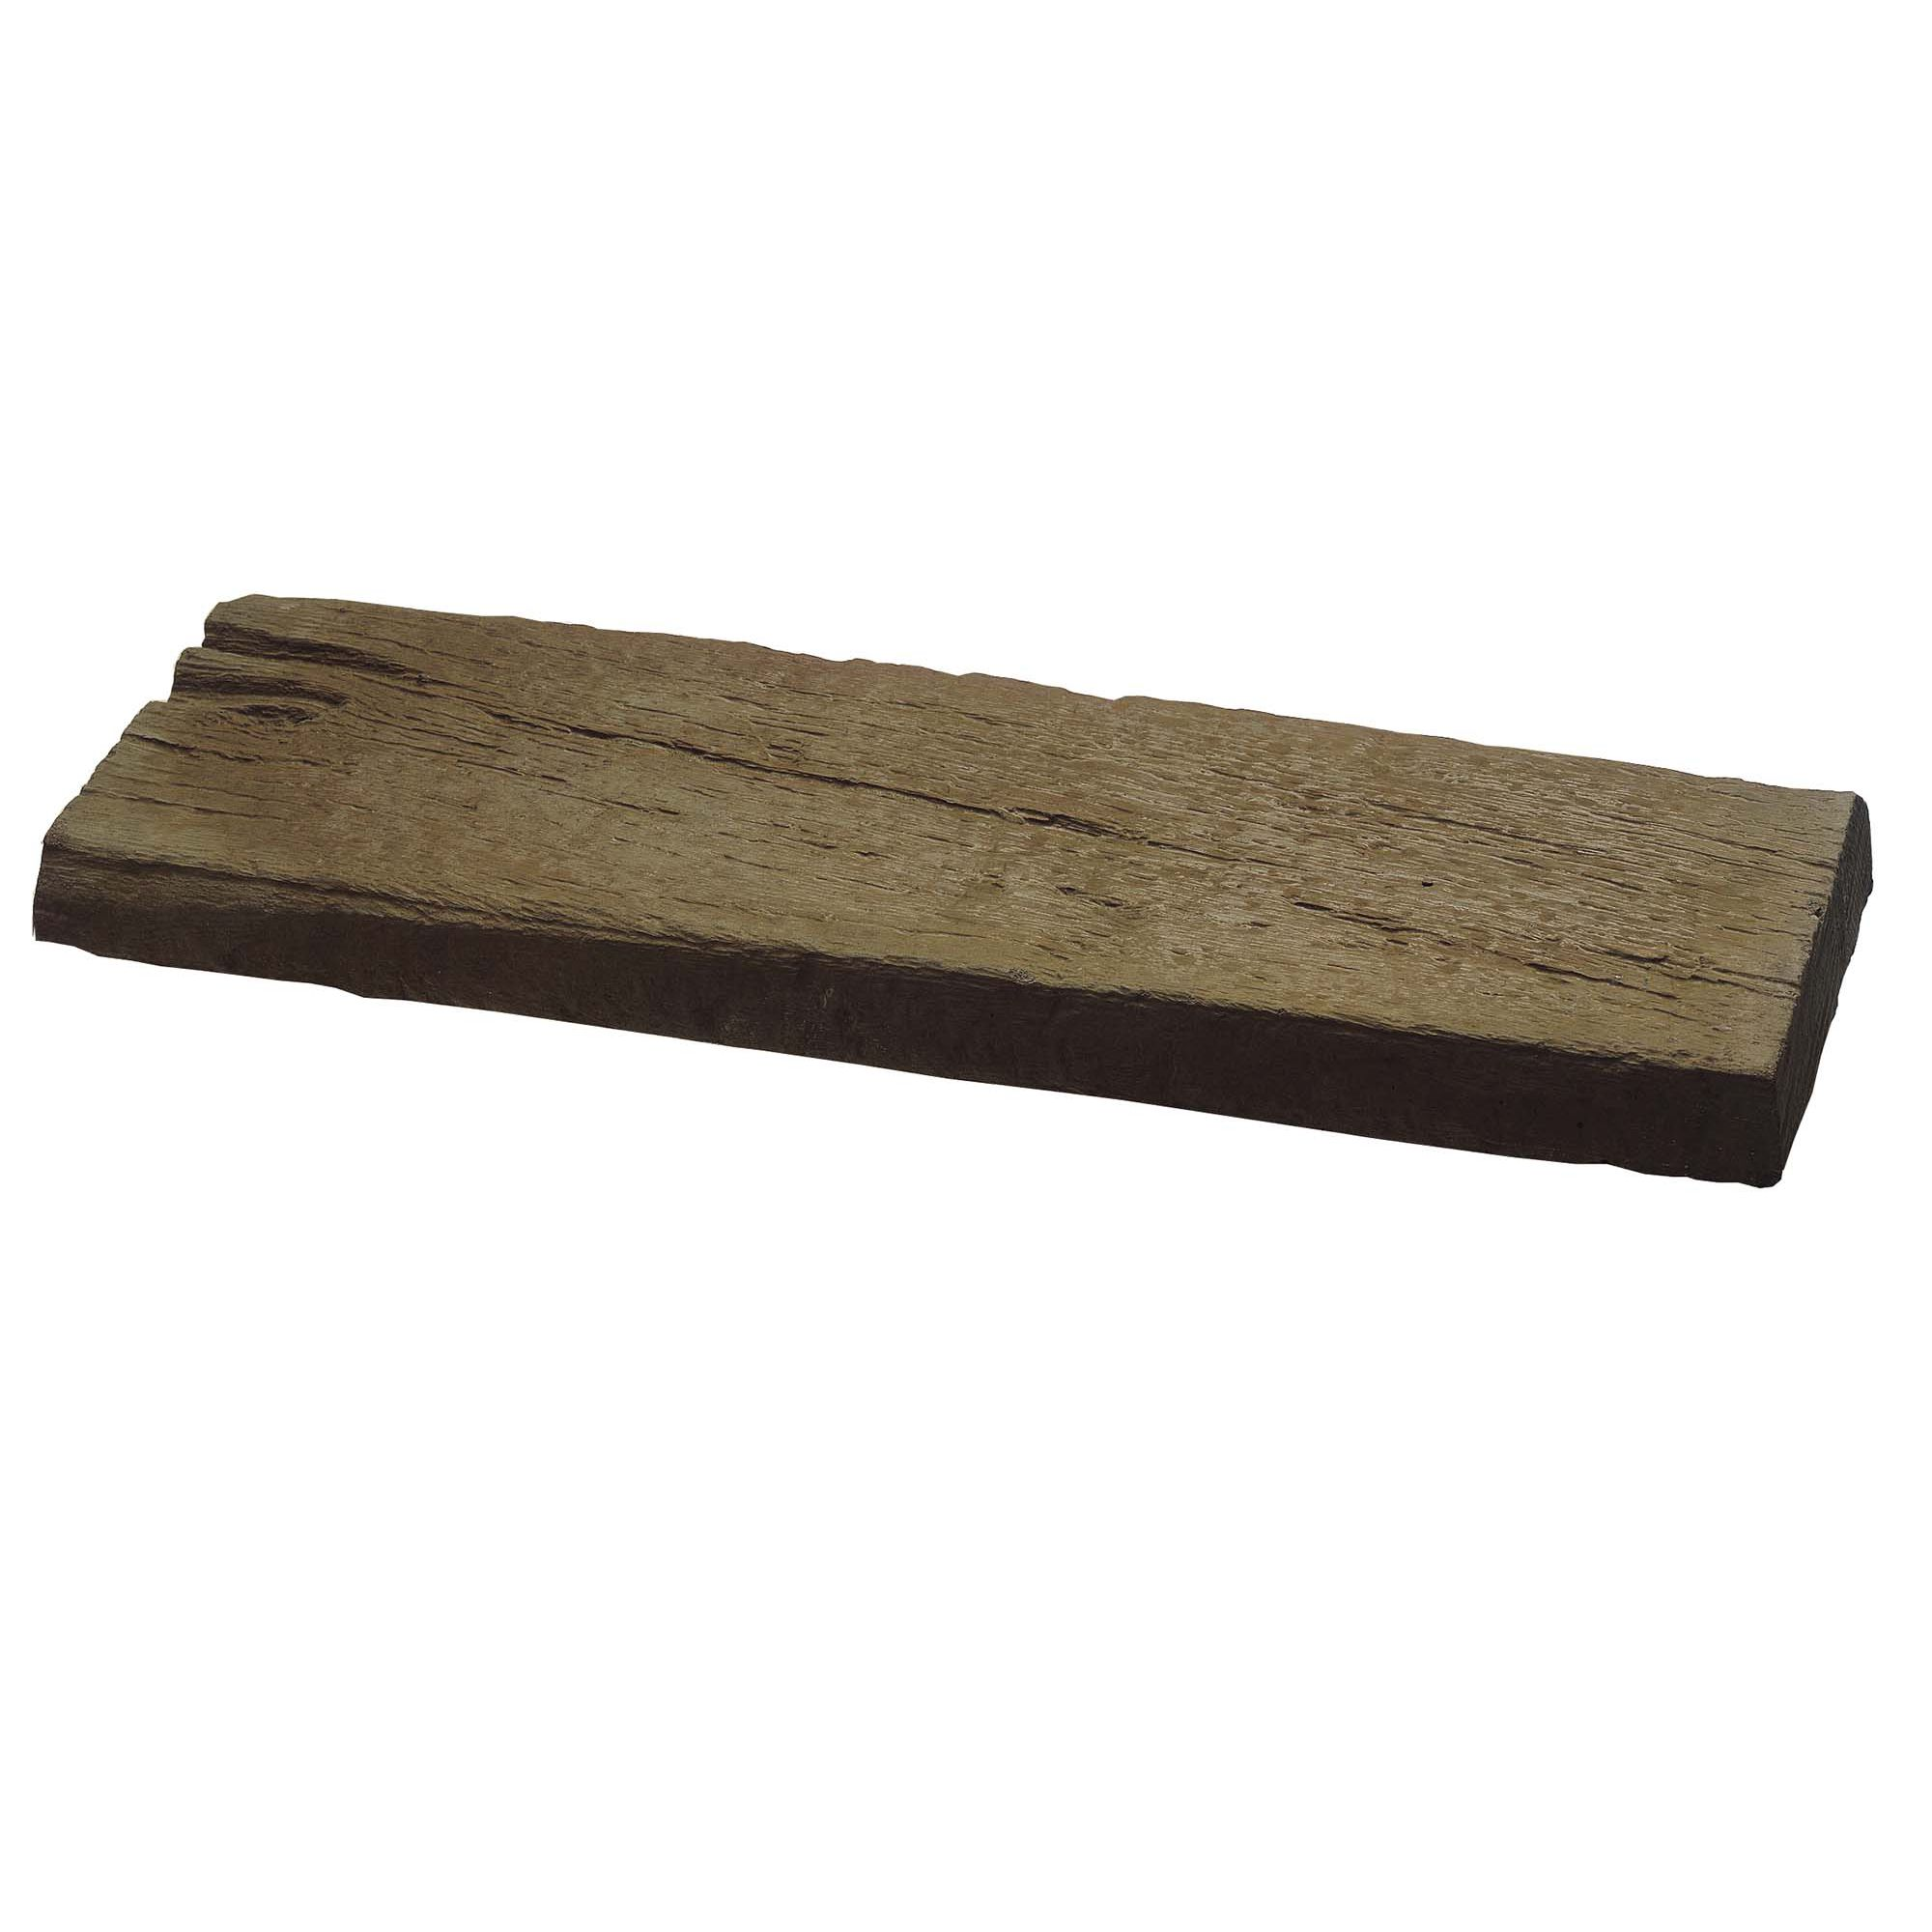 Sleeper Paving Timber Brown Medium at Tesco Direct